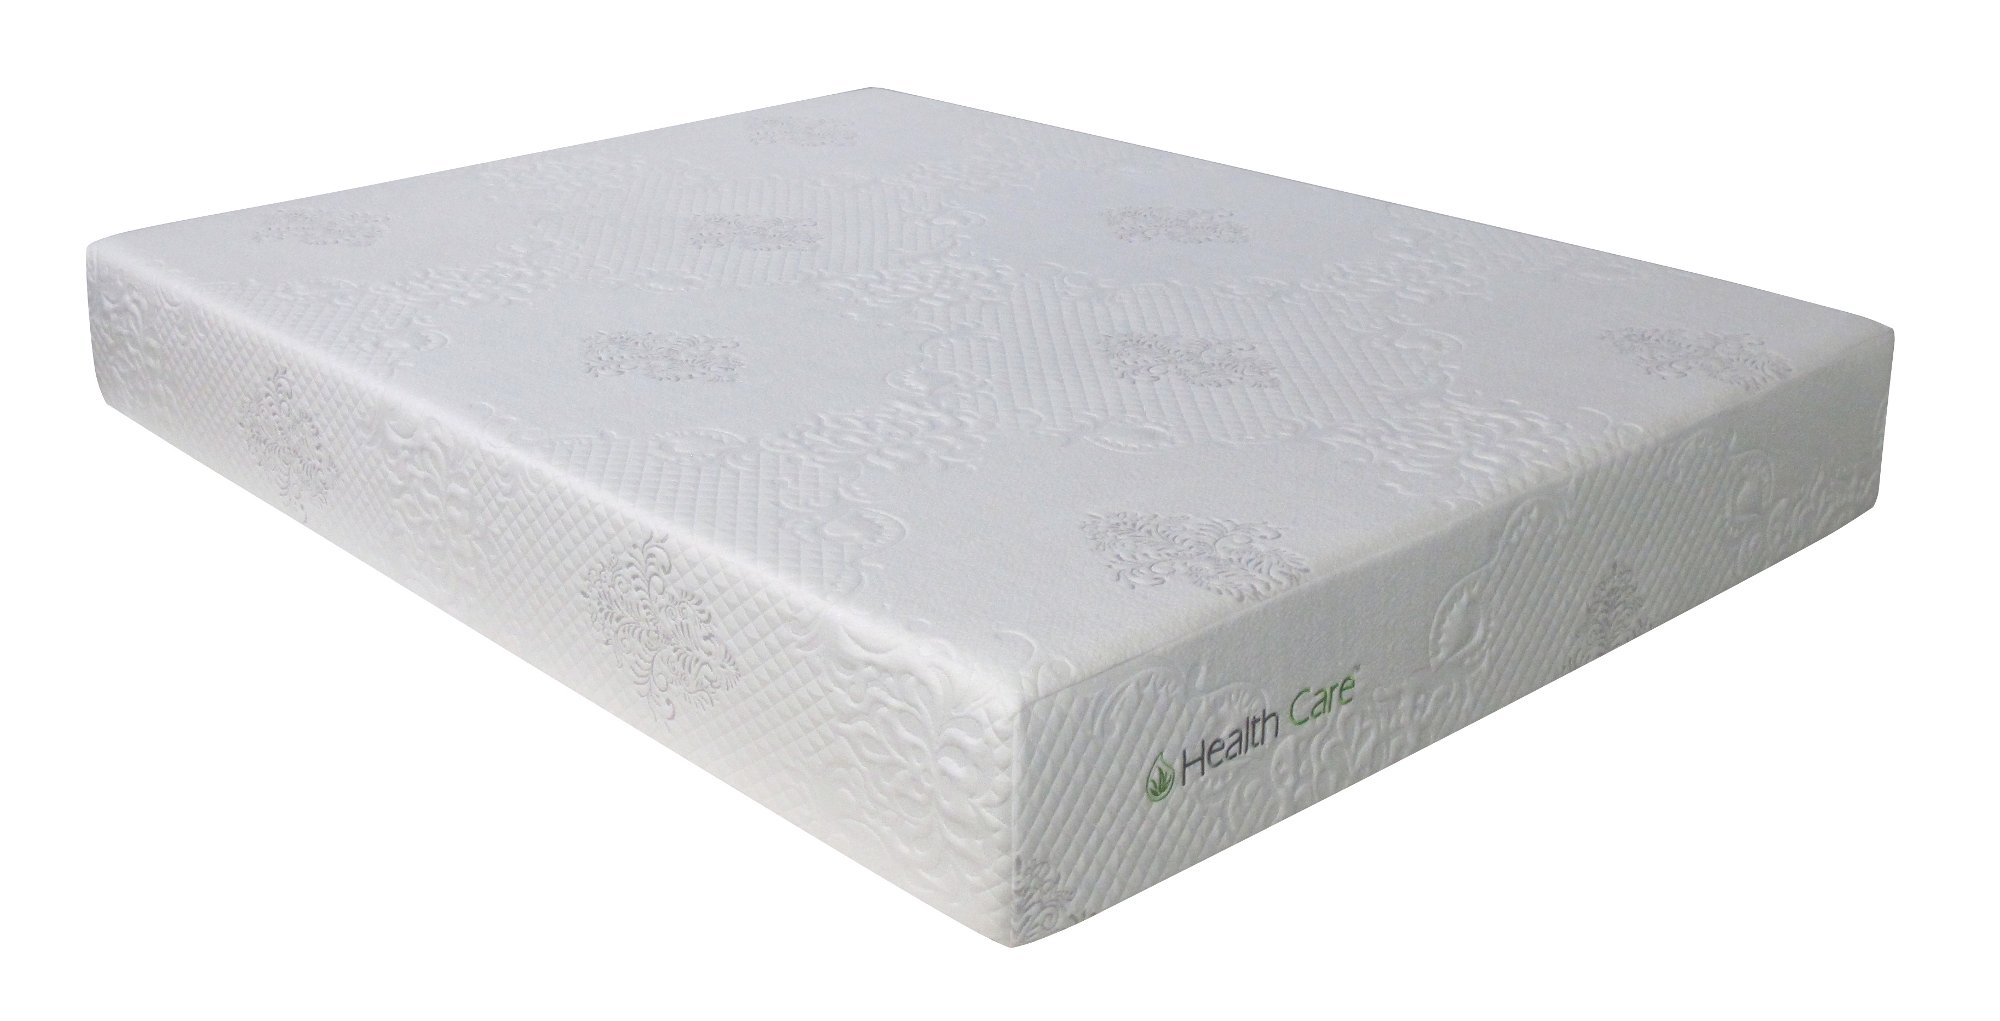 10 comfort gel full mattress with foldable base rc willey furniture store Full size foam mattress